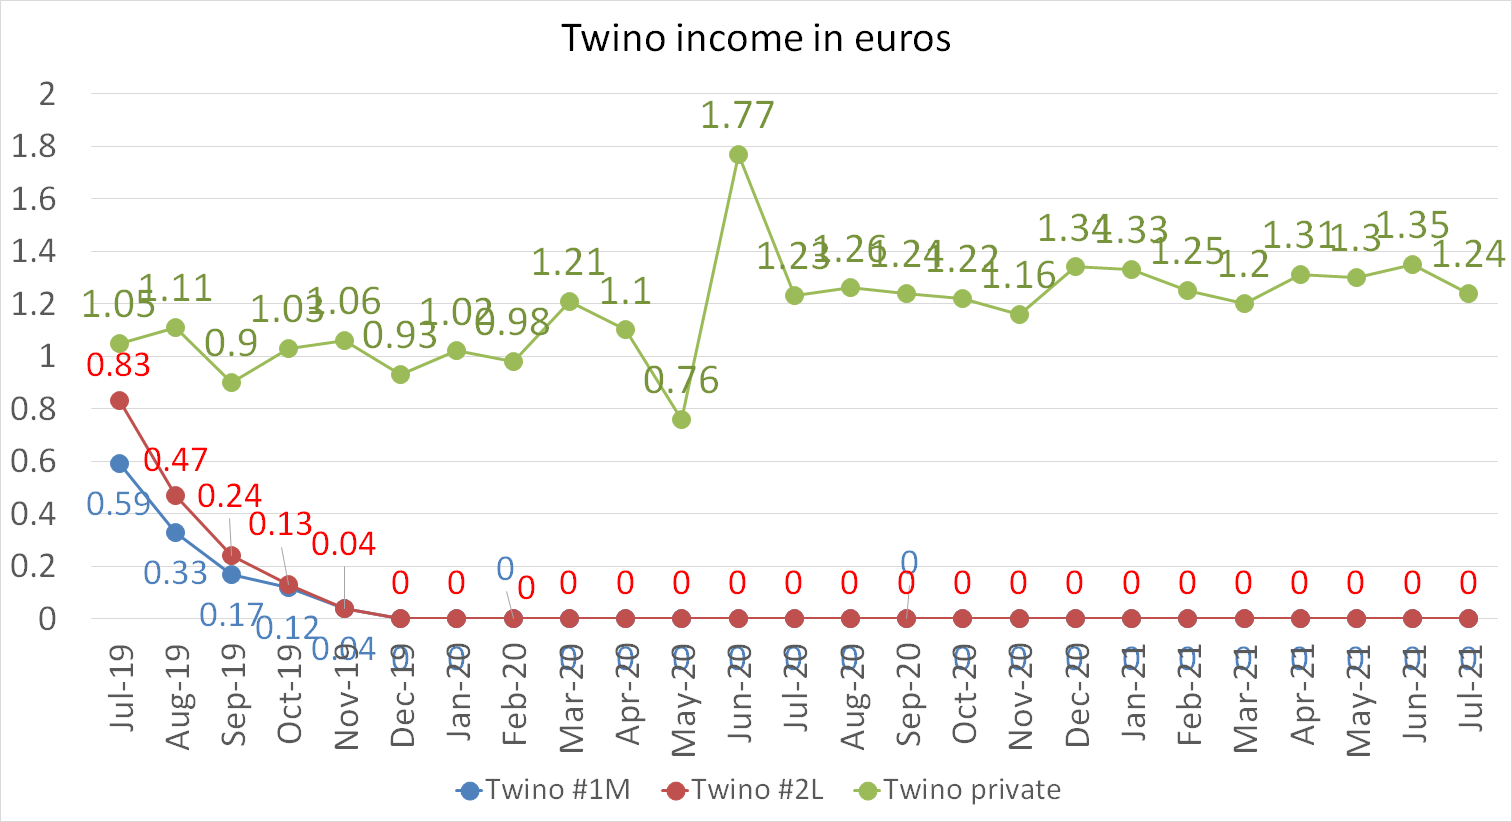 Twino income in euros july 2021